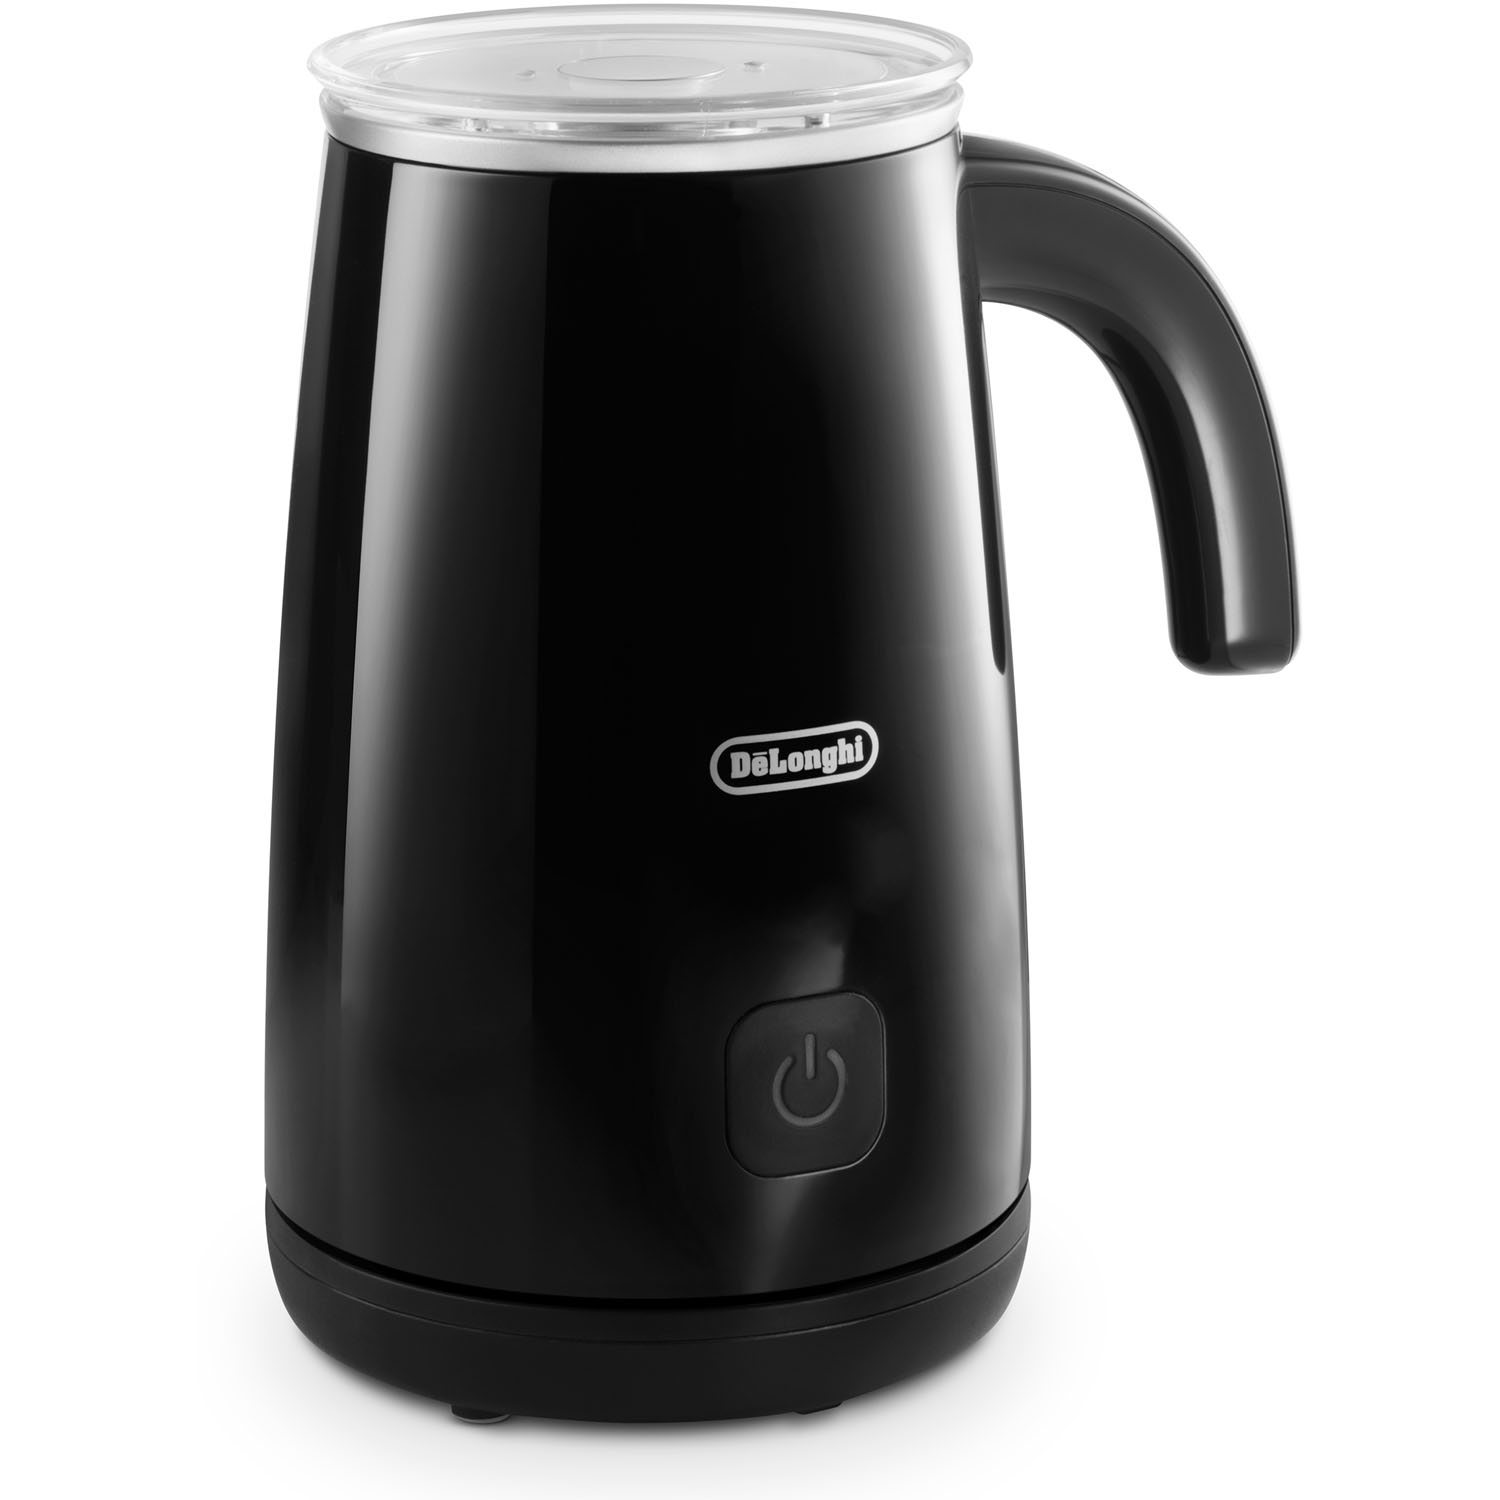 De'Longhi Electric Milk Frother with Hot and Cold Function